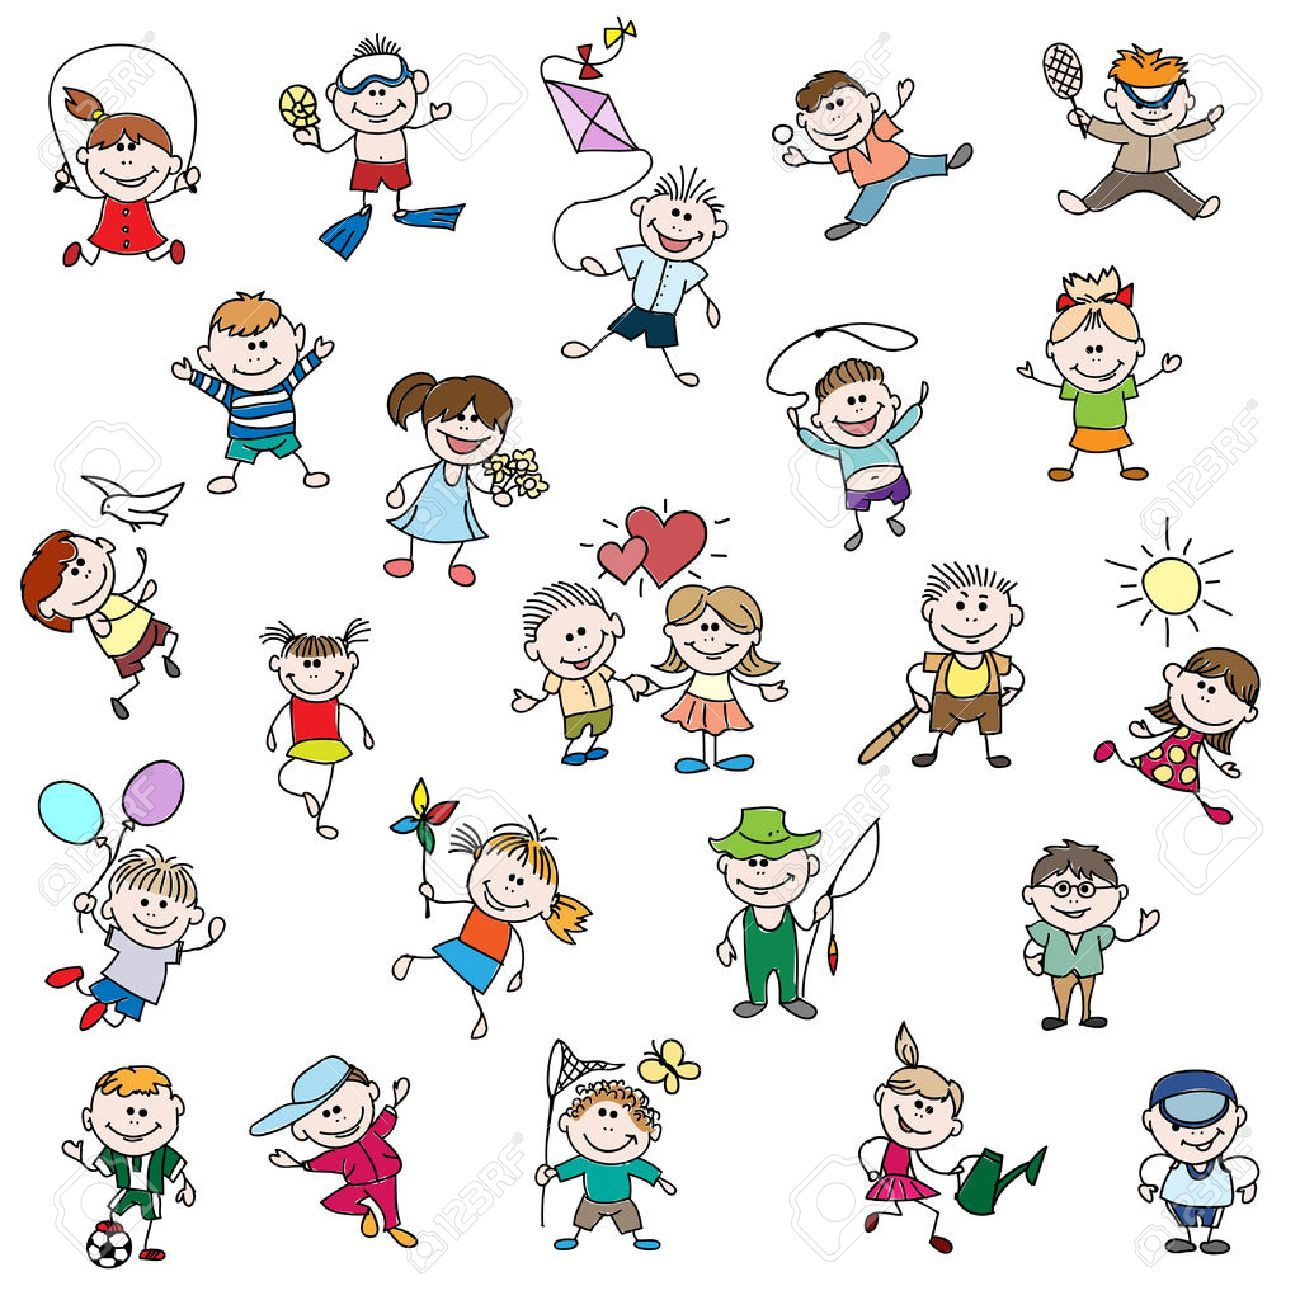 Caricature body templates clipart image transparent download Image result for caricature body templates   caricatures   Doodle ... image transparent download